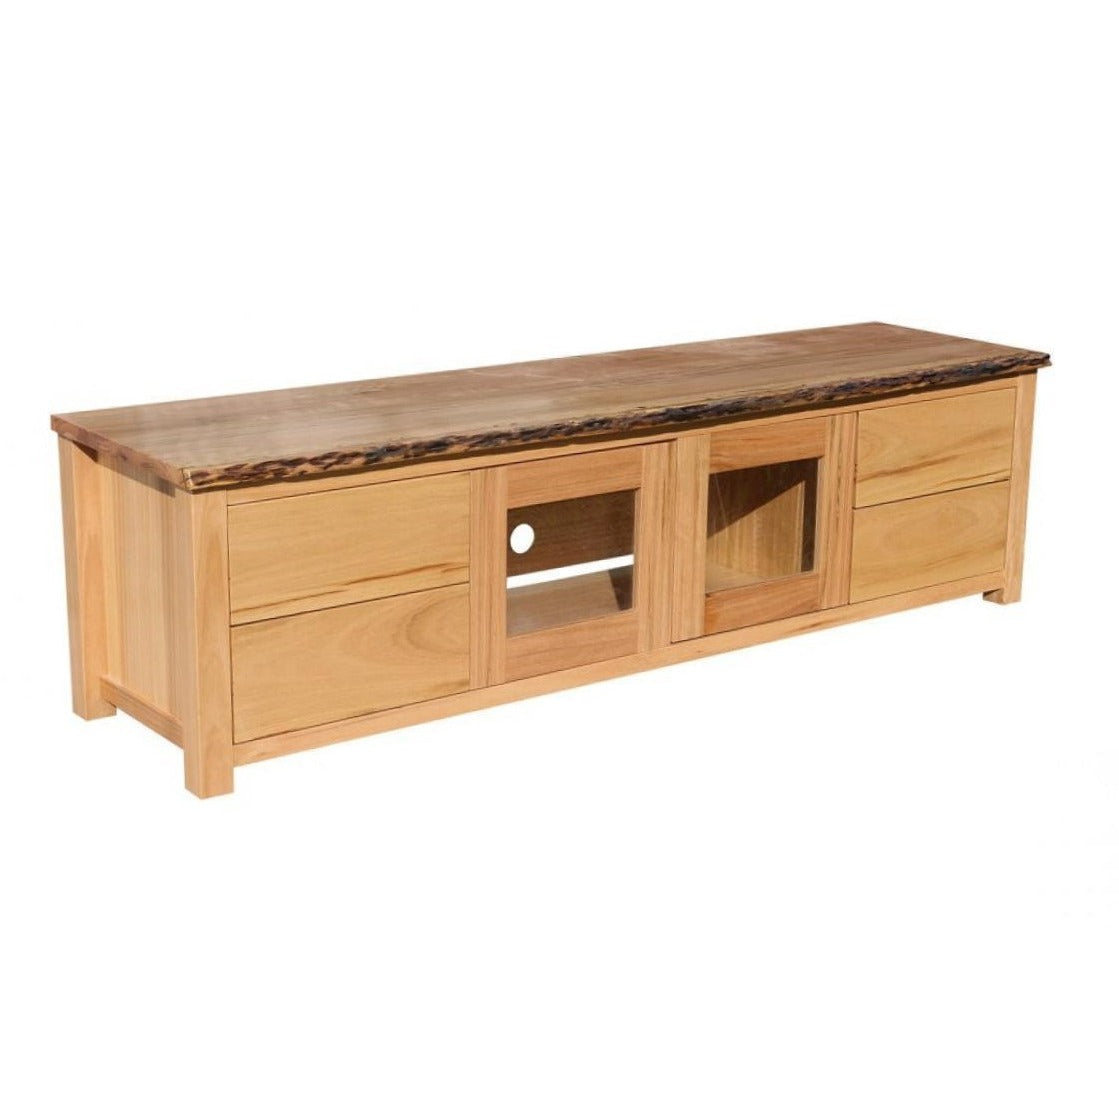 Carlton Style Entertainment Unit-tv unit-Wildwood Designs Furniture